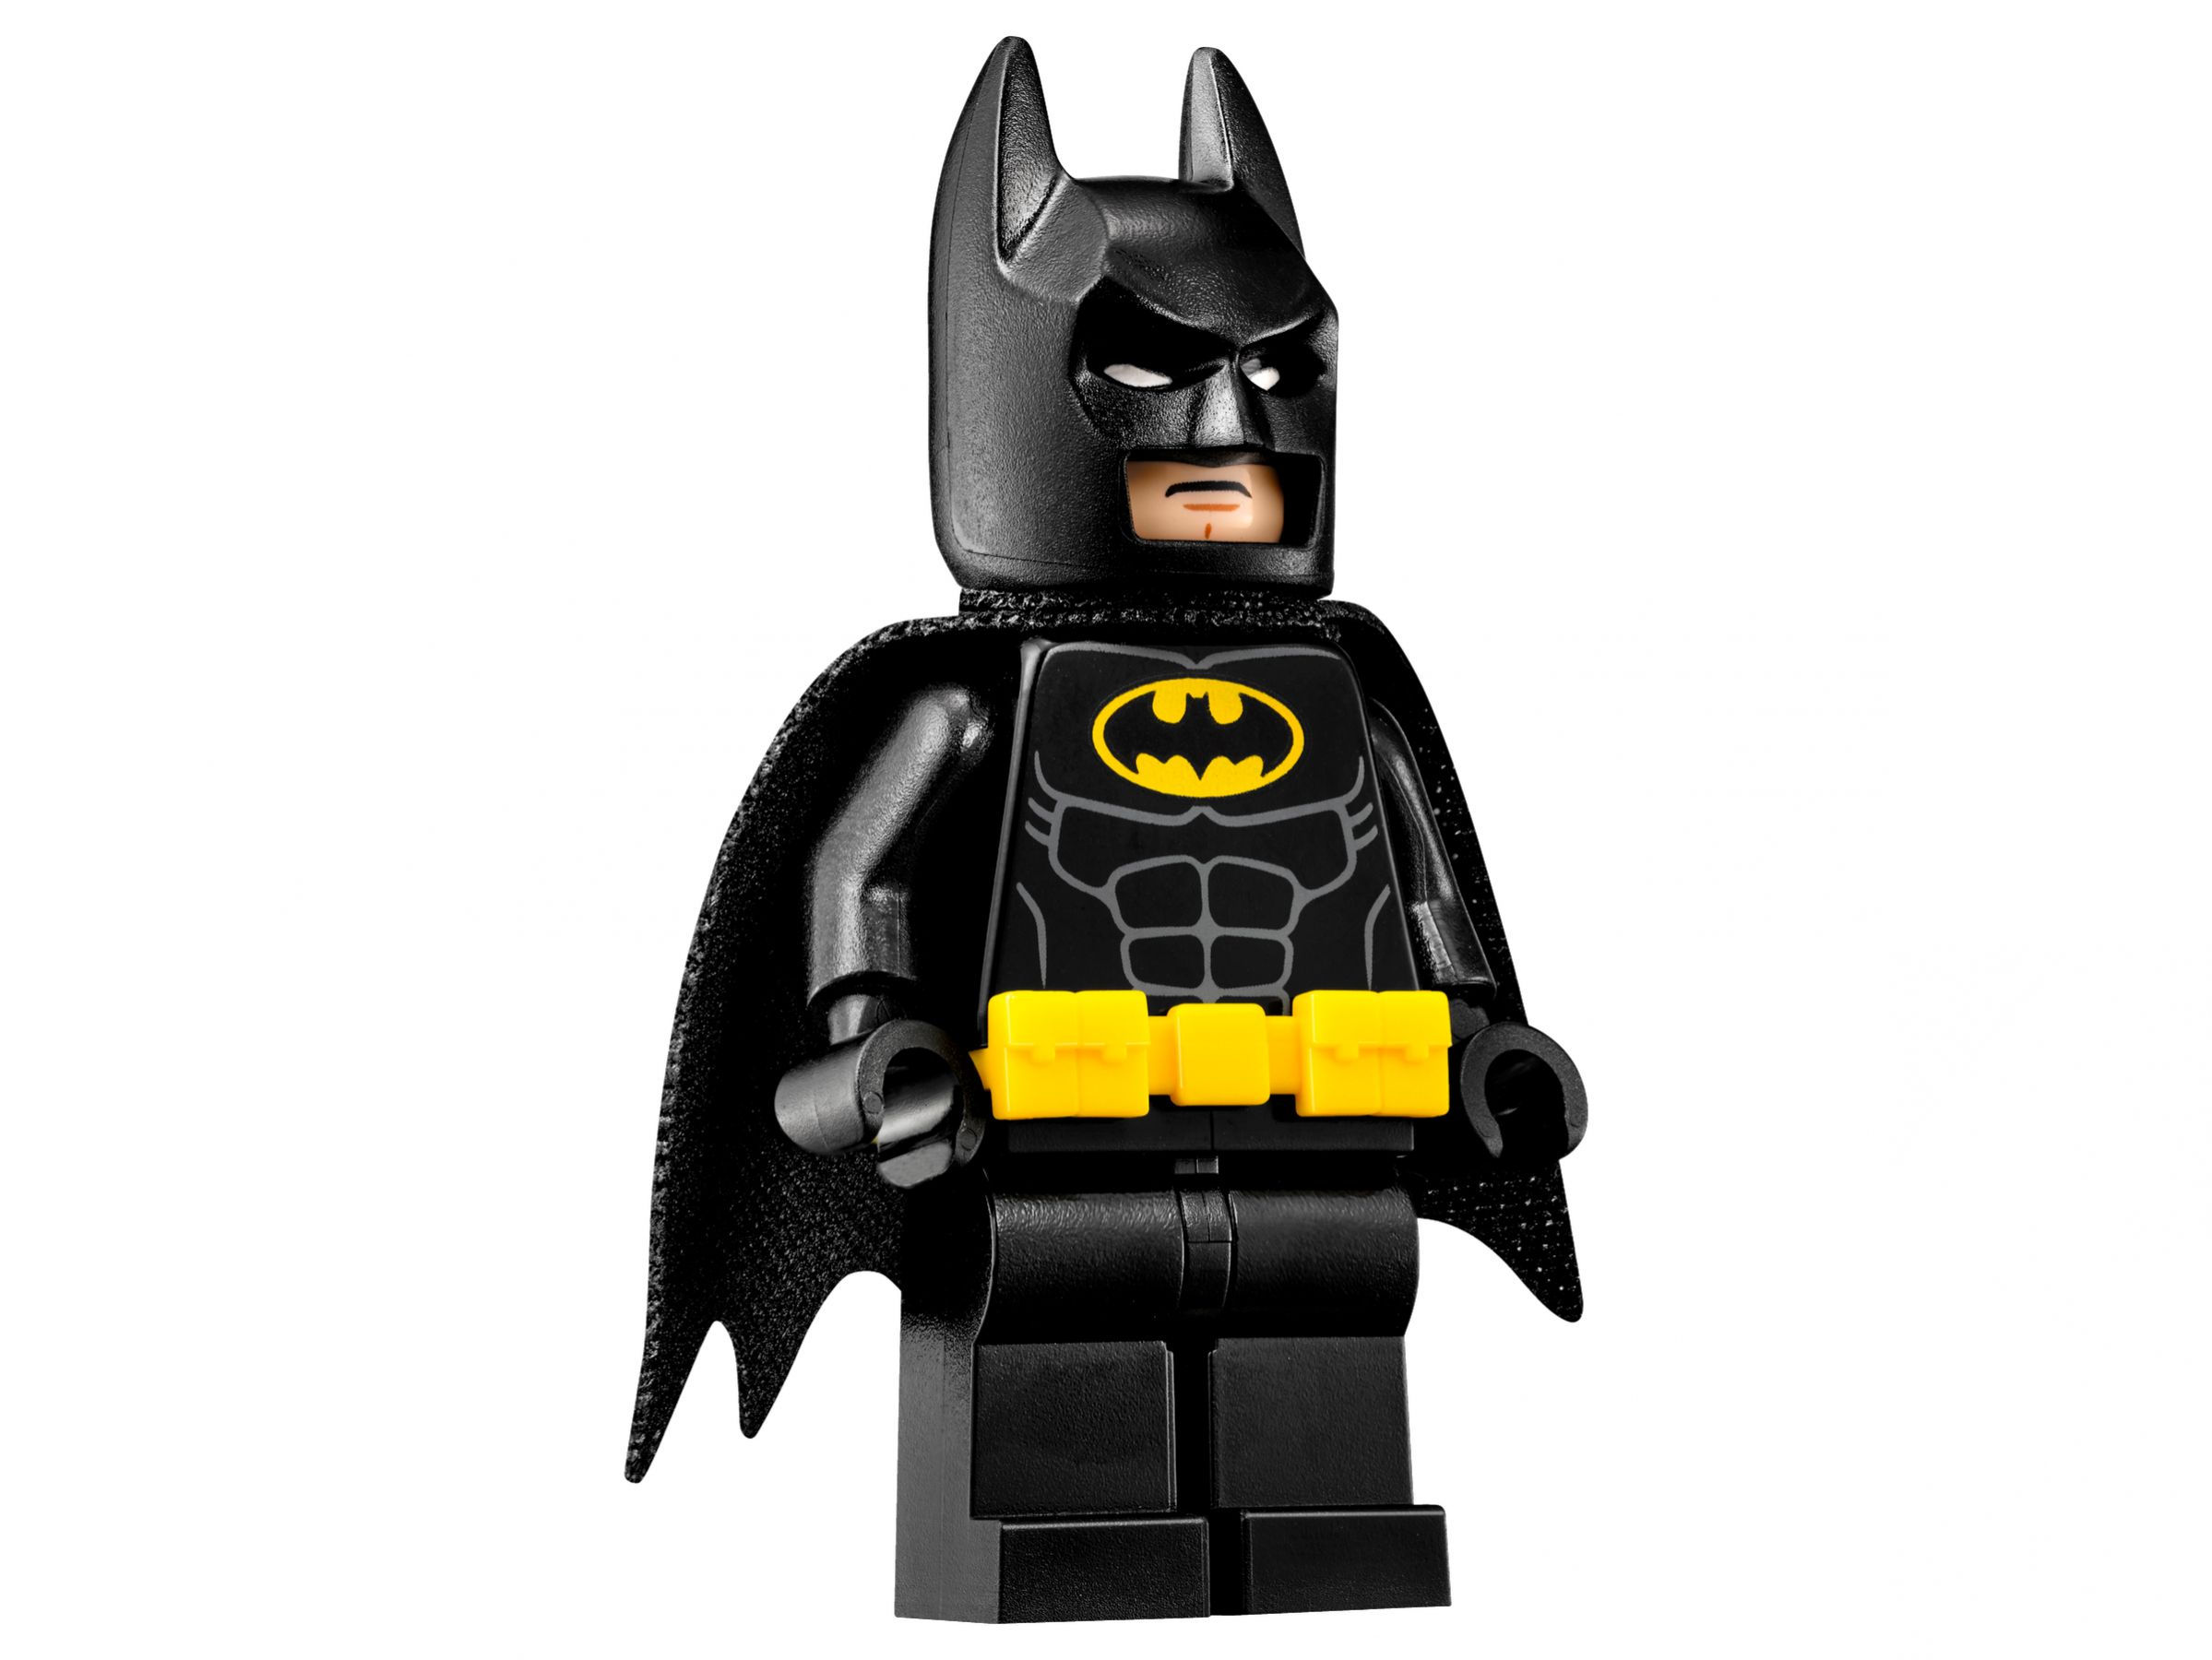 LEGO The LEGO Batman Movie 70905 Das Batmobil LEGO_70905_alt7.jpg